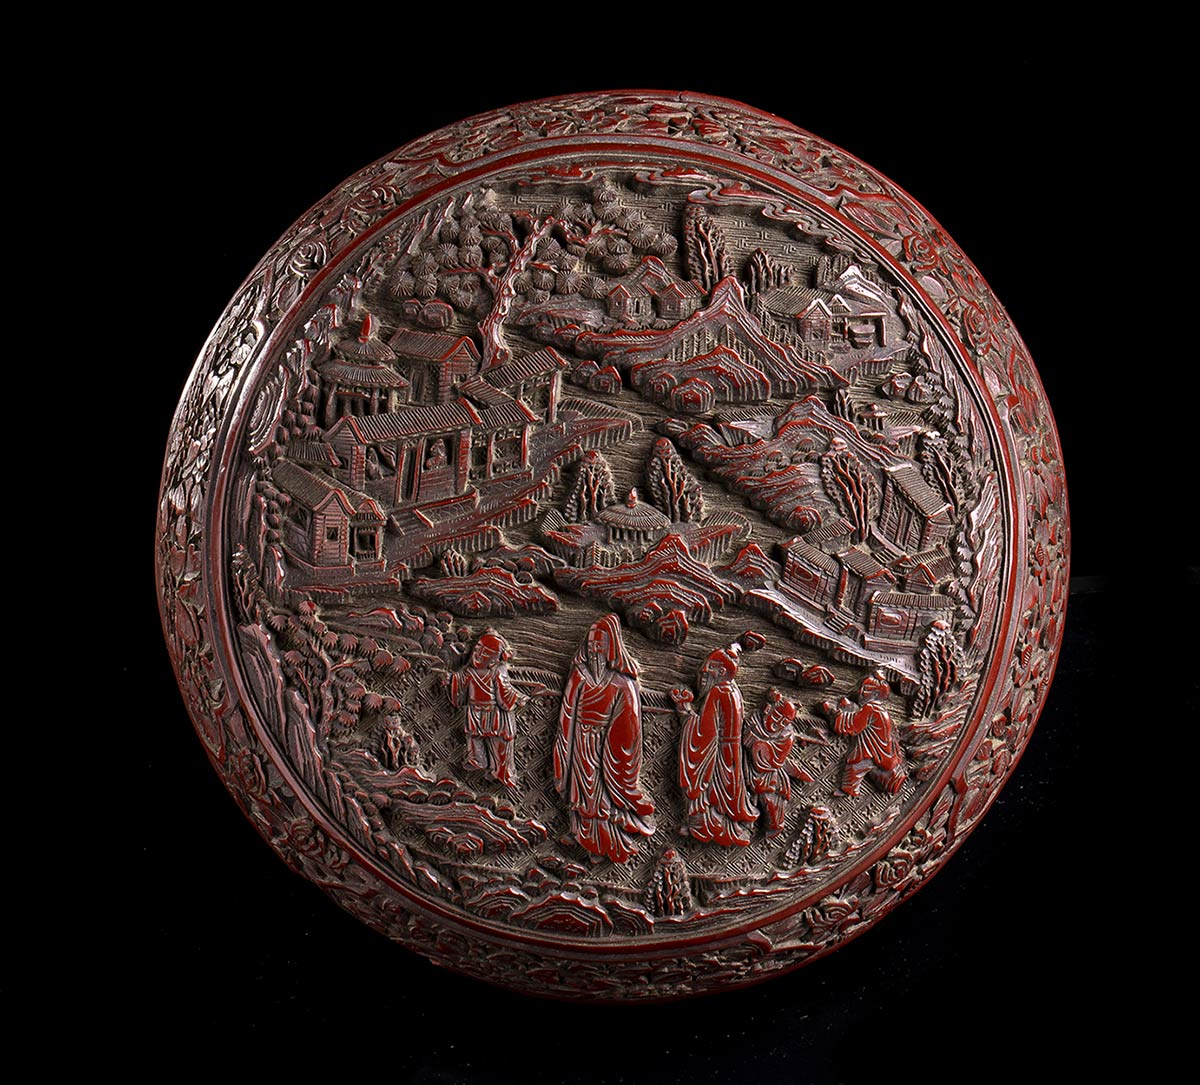 A CARVED RED LACQUER CIRCULAR BOX AND COVERChina, 19th-20th century - Image 2 of 4